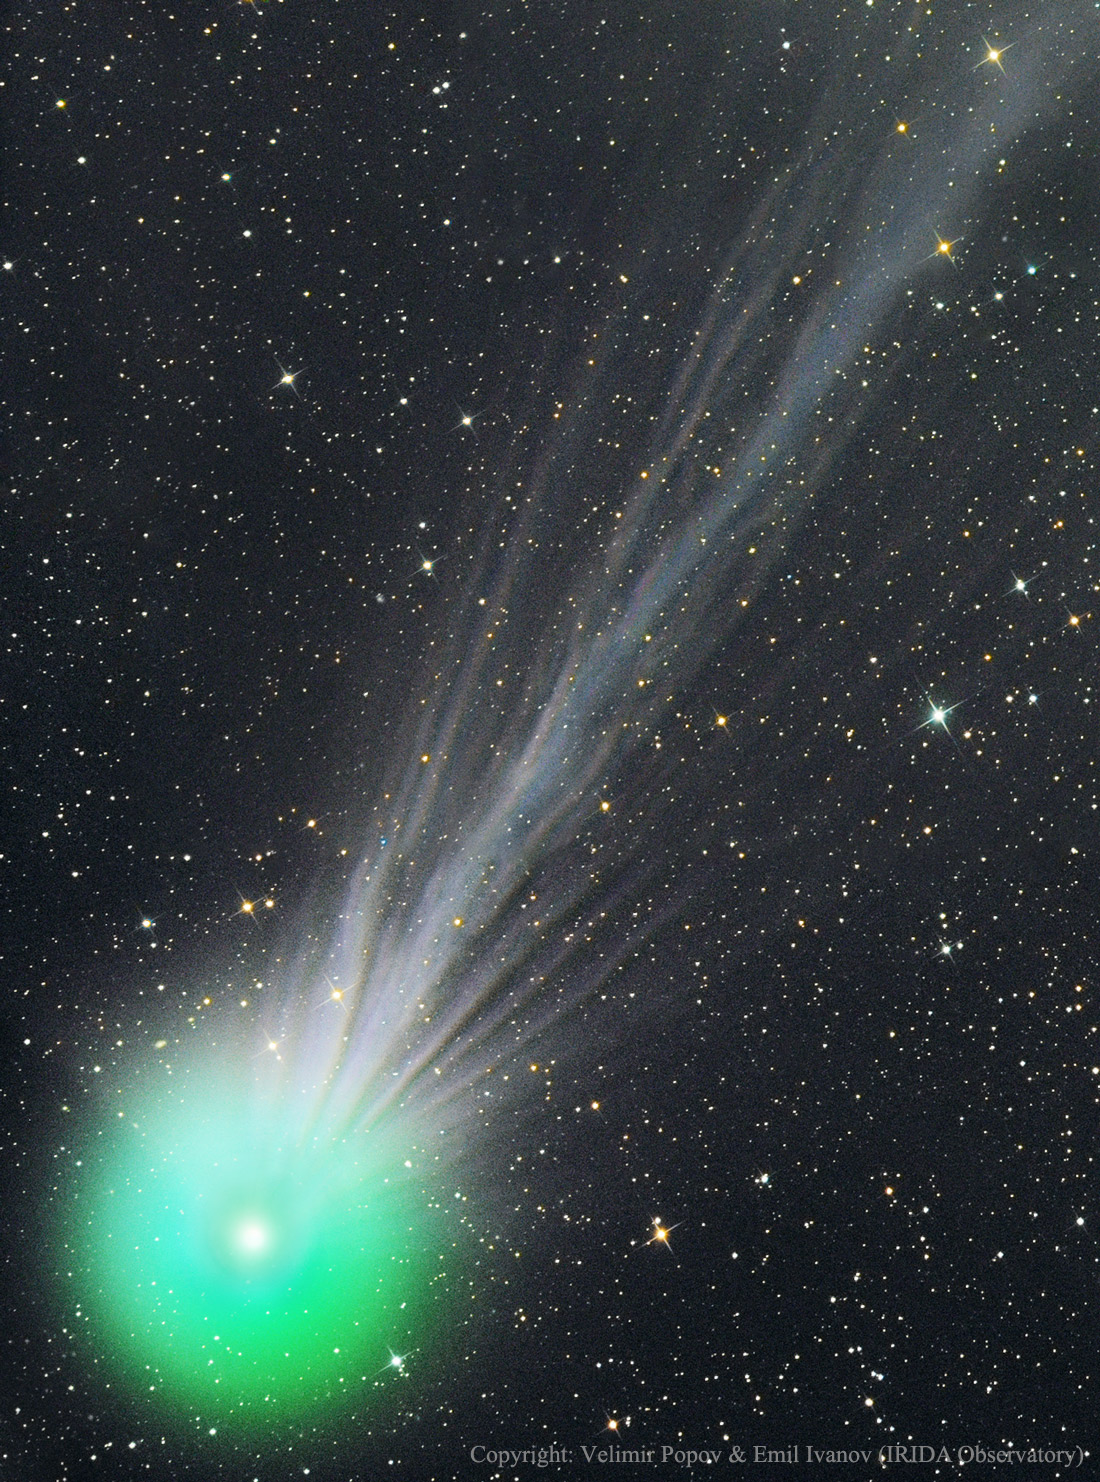 Apod 2015 January 21 The Complex Ion Tail Of Comet Lovejoy